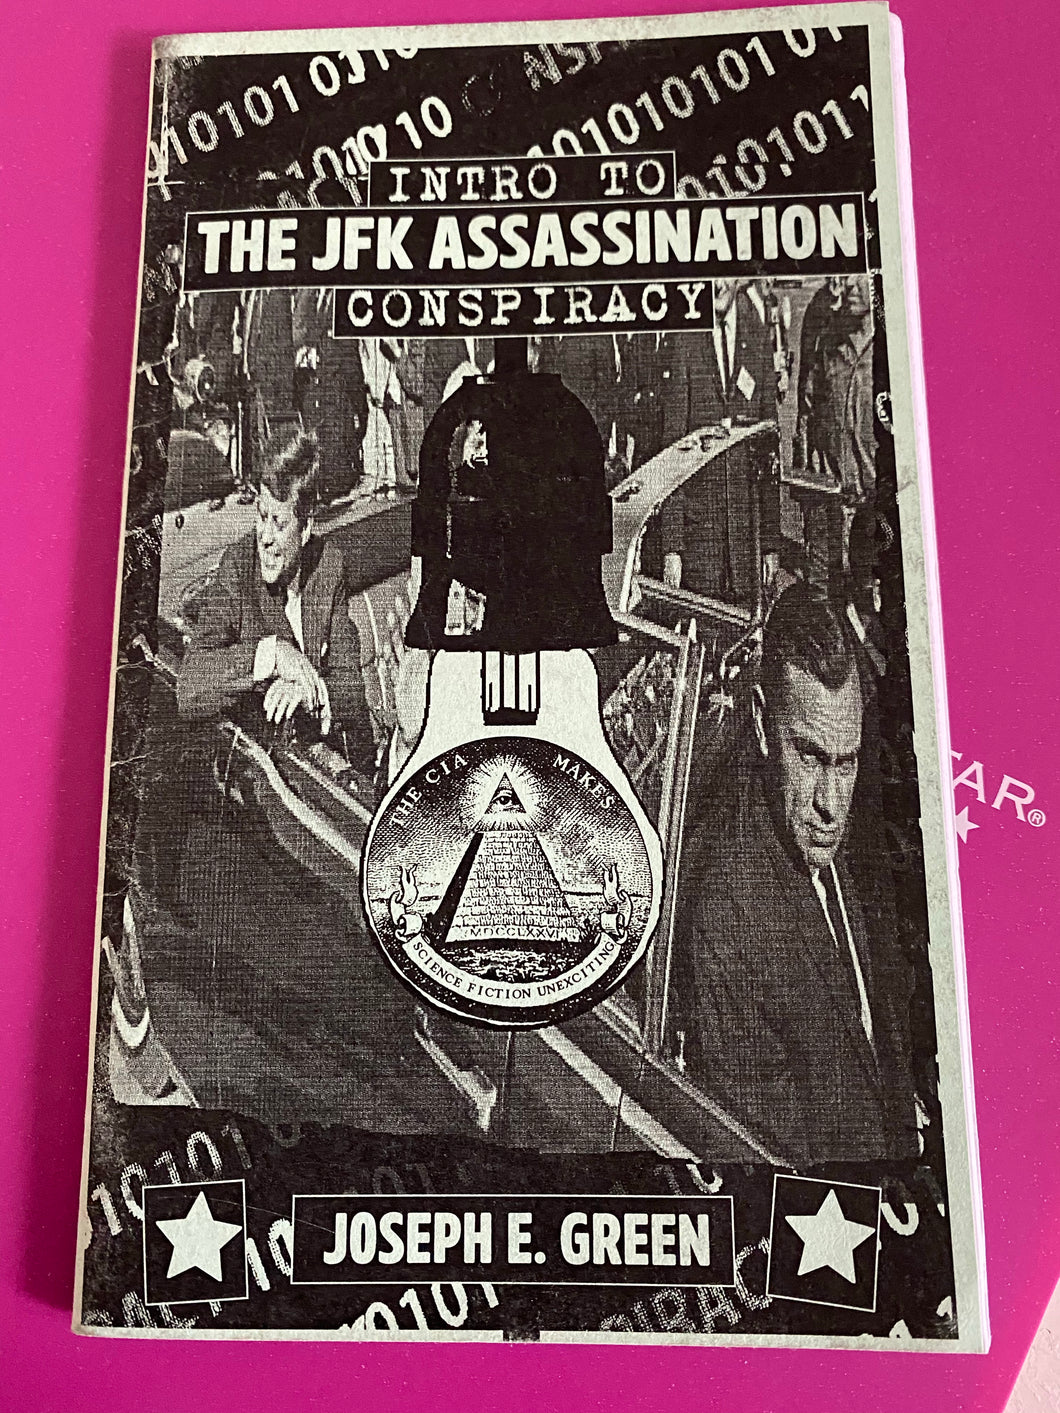 Intro to The JFK Assassination Conspiracy